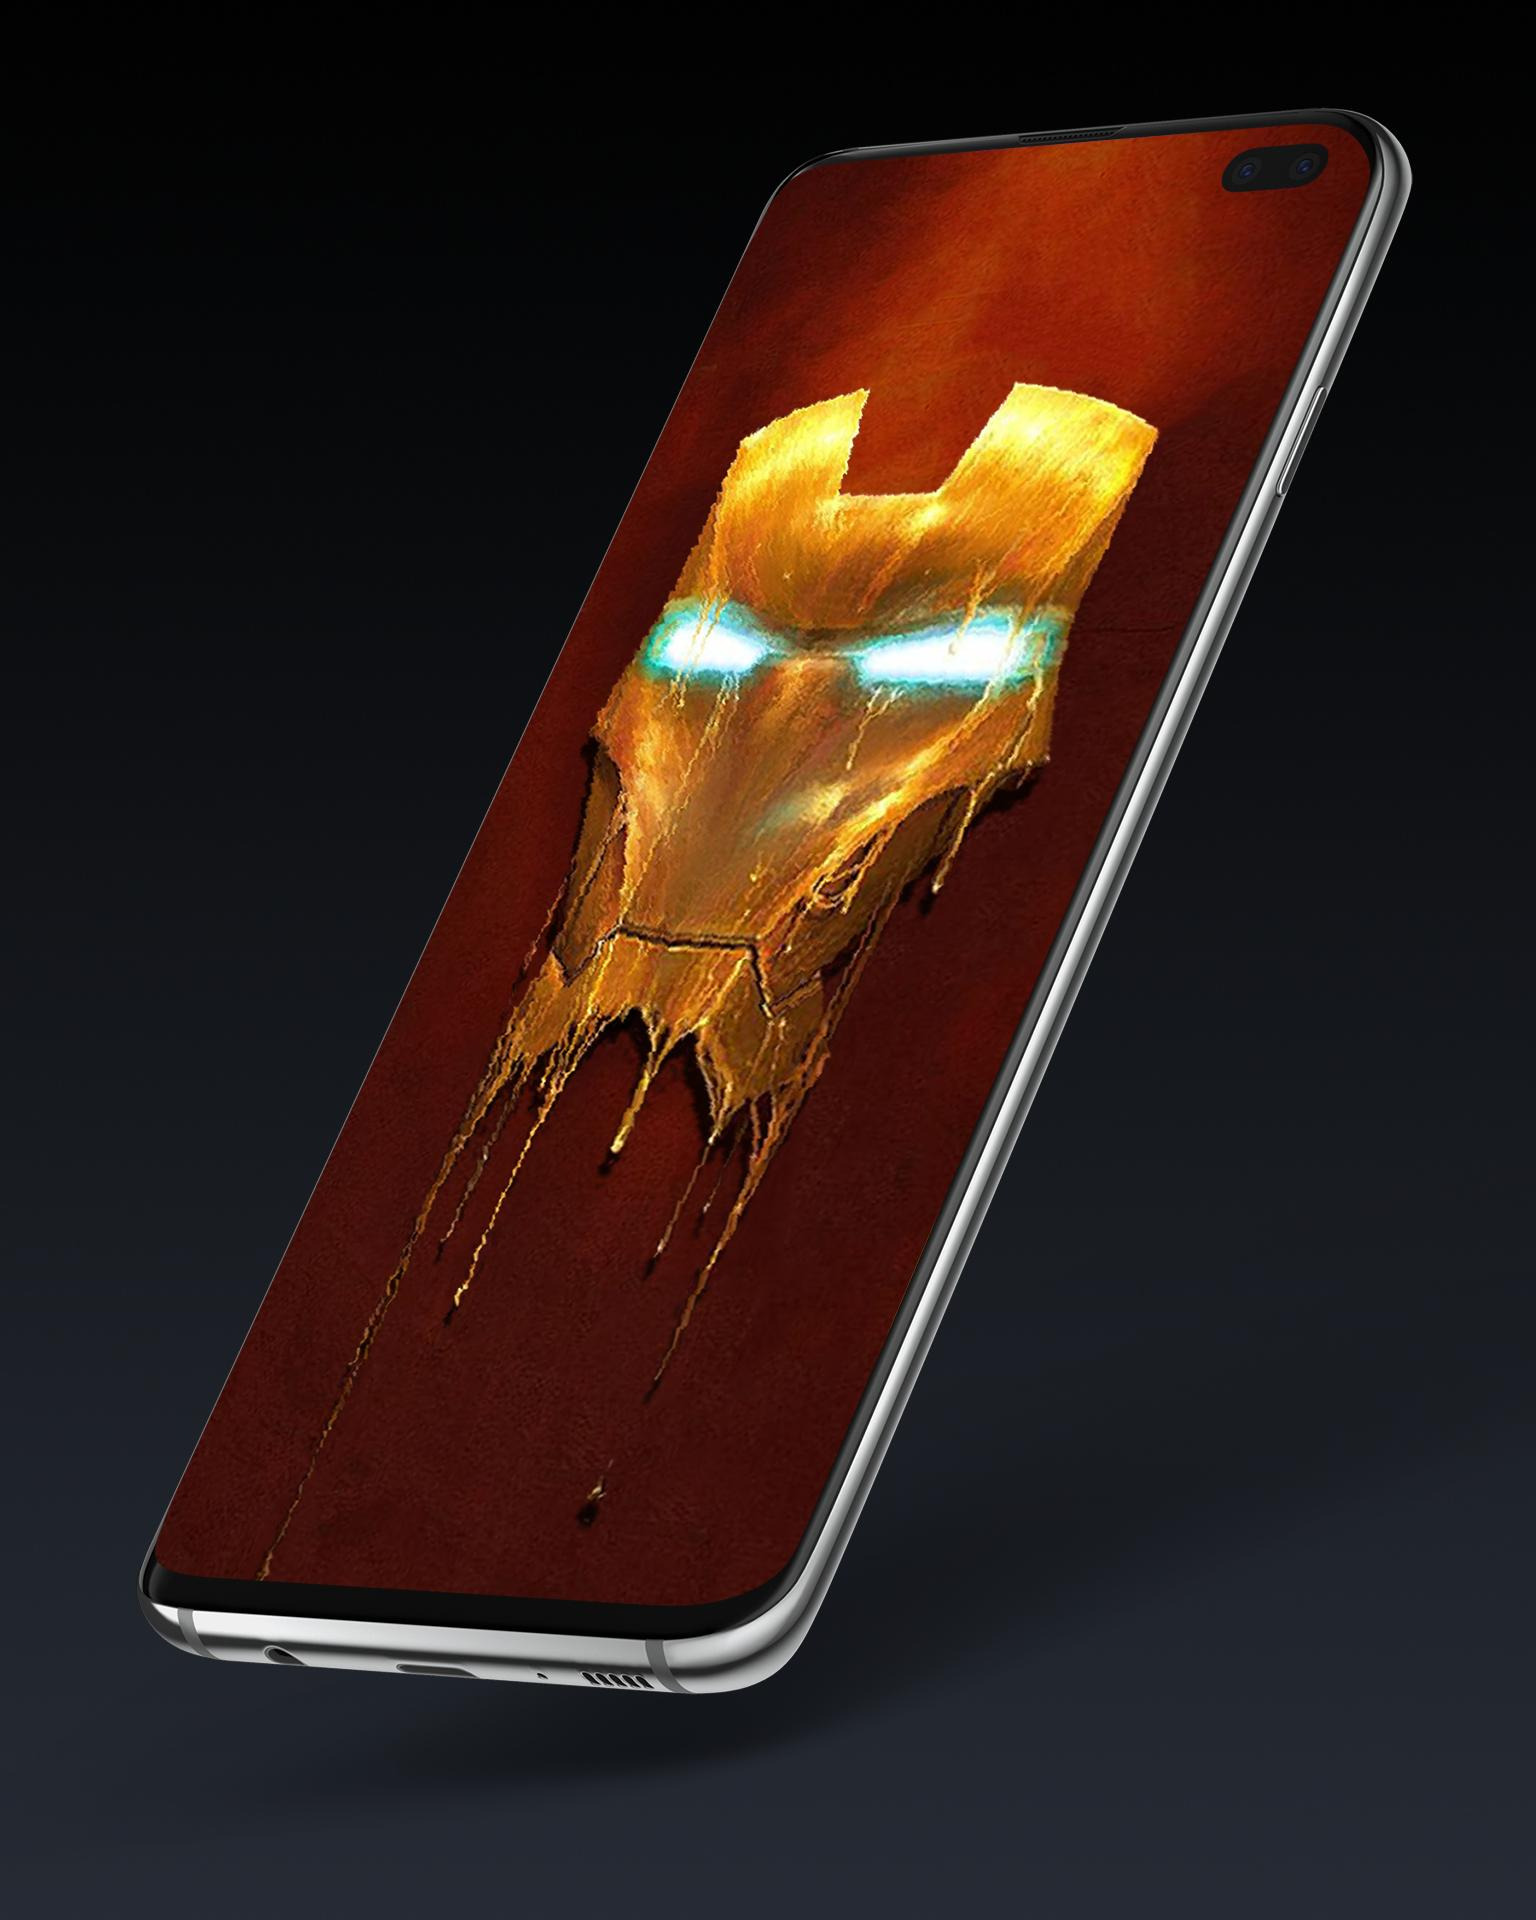 Live Wallpapers 4k Backgrounds 3d Hd Pixel 4d For Android Apk Download